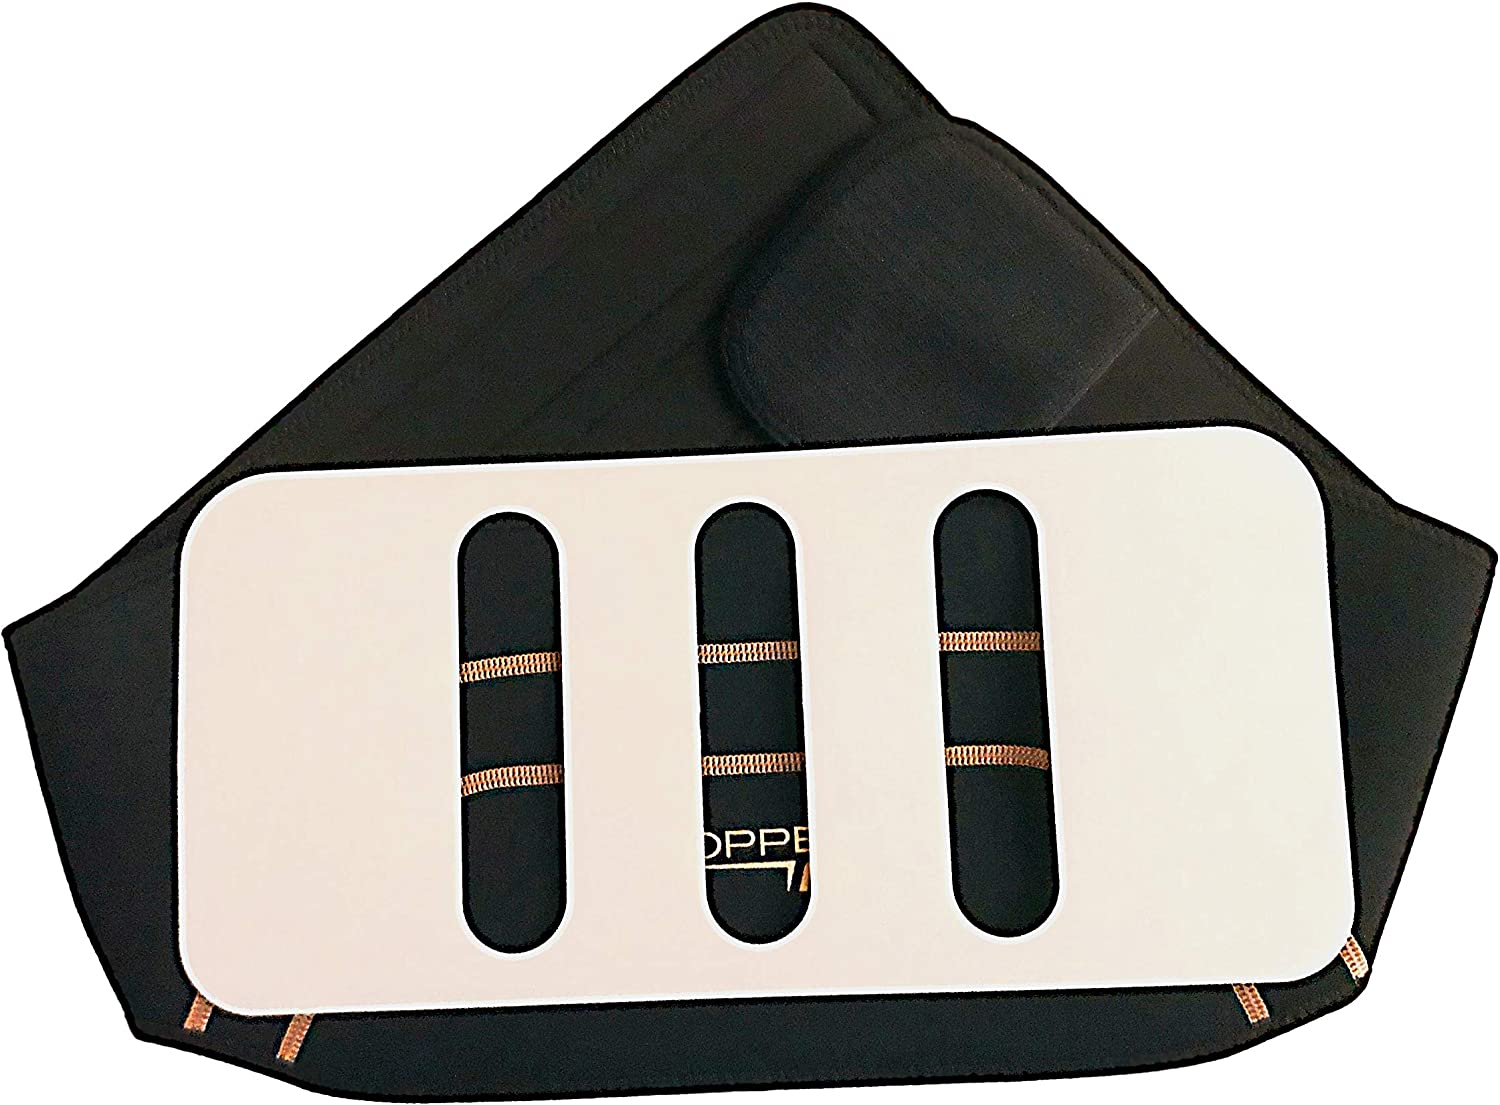 28-39 Copper Fit Deluxe Compression Lower Back Support AS SEEN ON TV New All Sizes Comes with The Support Panel Use with or Without The Support Panel Small//Medium